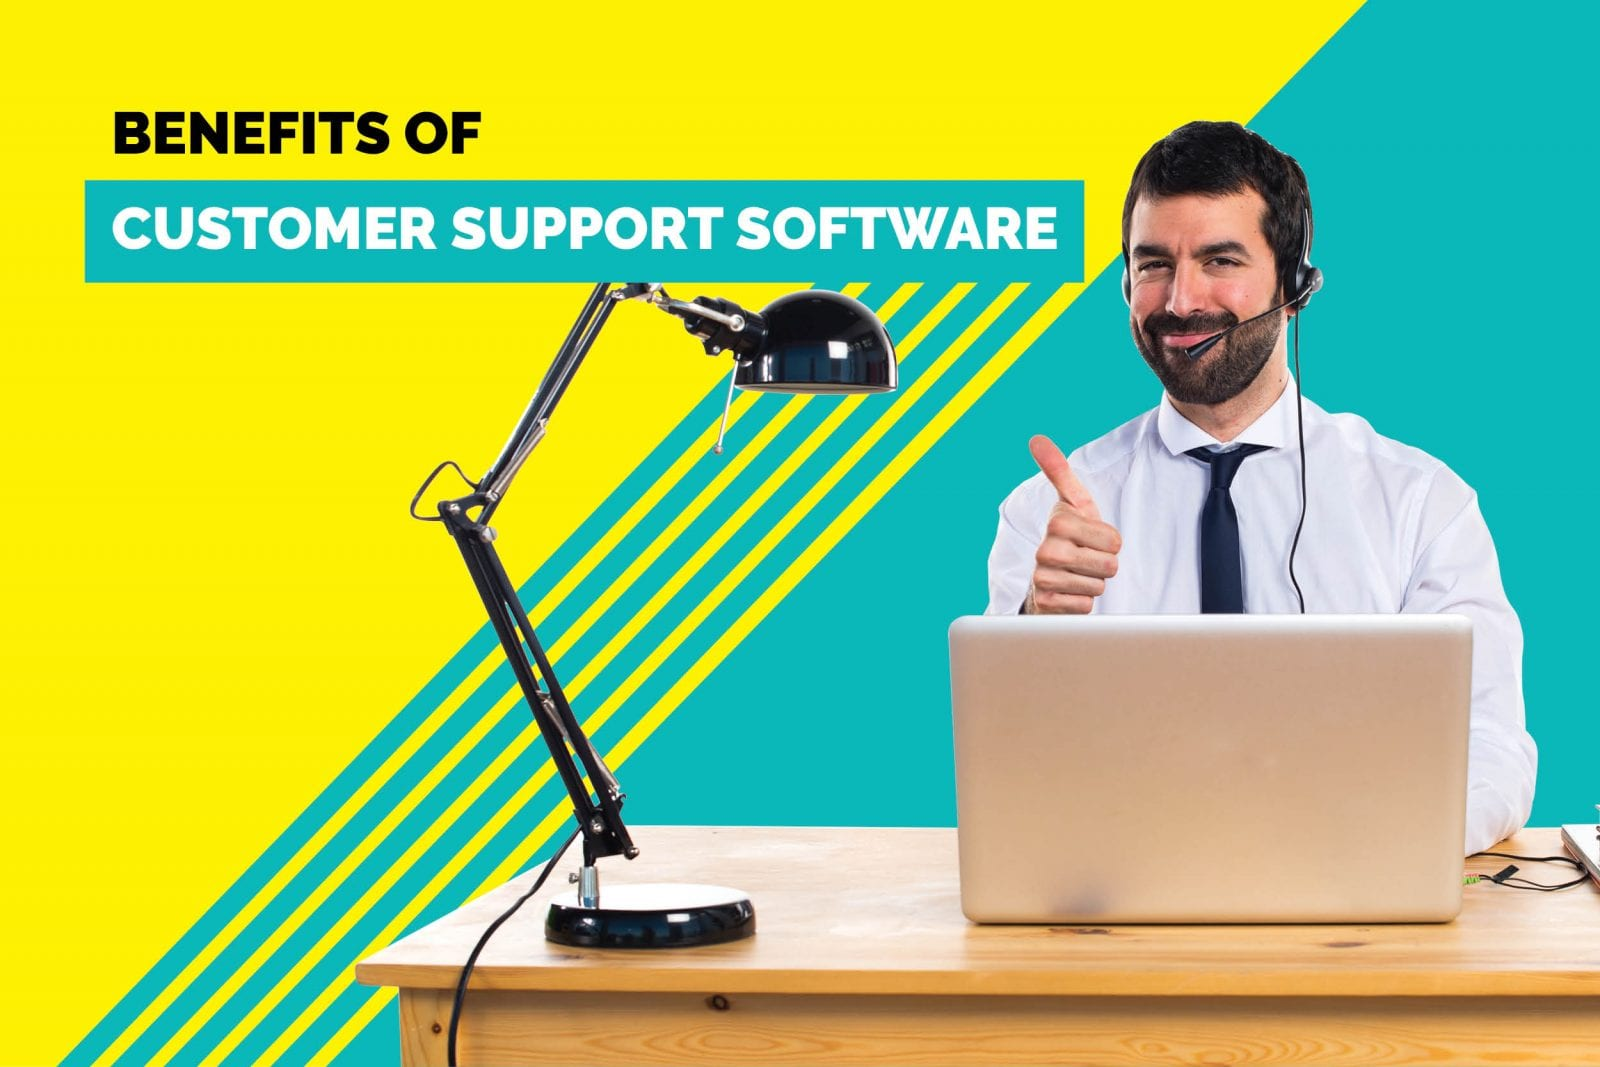 Benefits of using customer support software